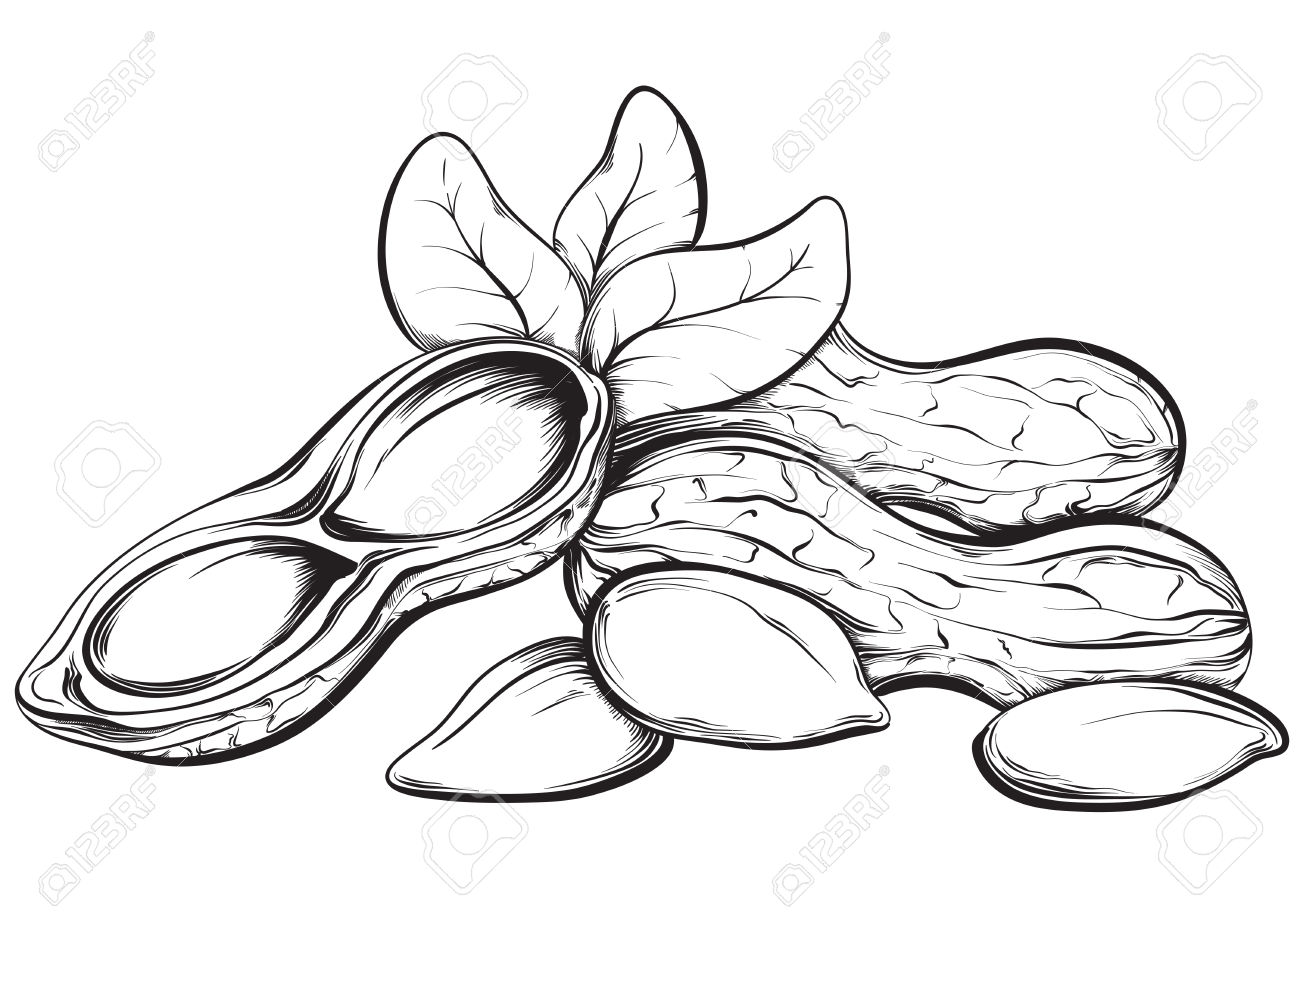 Peanuts. Hand Drawn Sketches Vector Illustration On White.